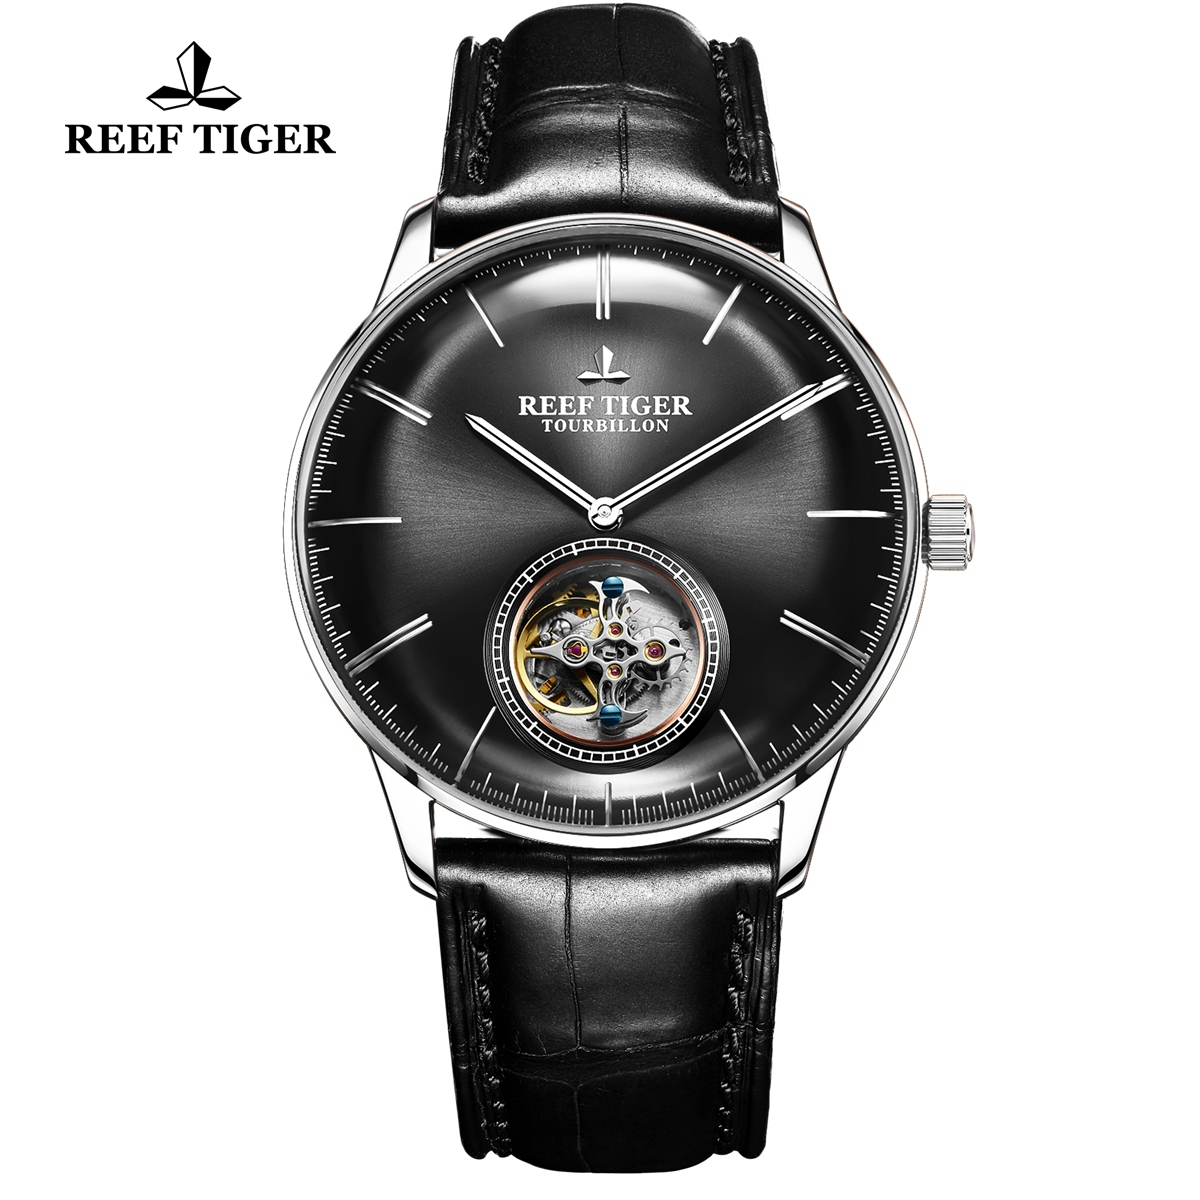 Reef Tiger Seattle Tourbillon Fashion Steel Black Dial Leather Strap Automatic Watch RGA1930-YBB